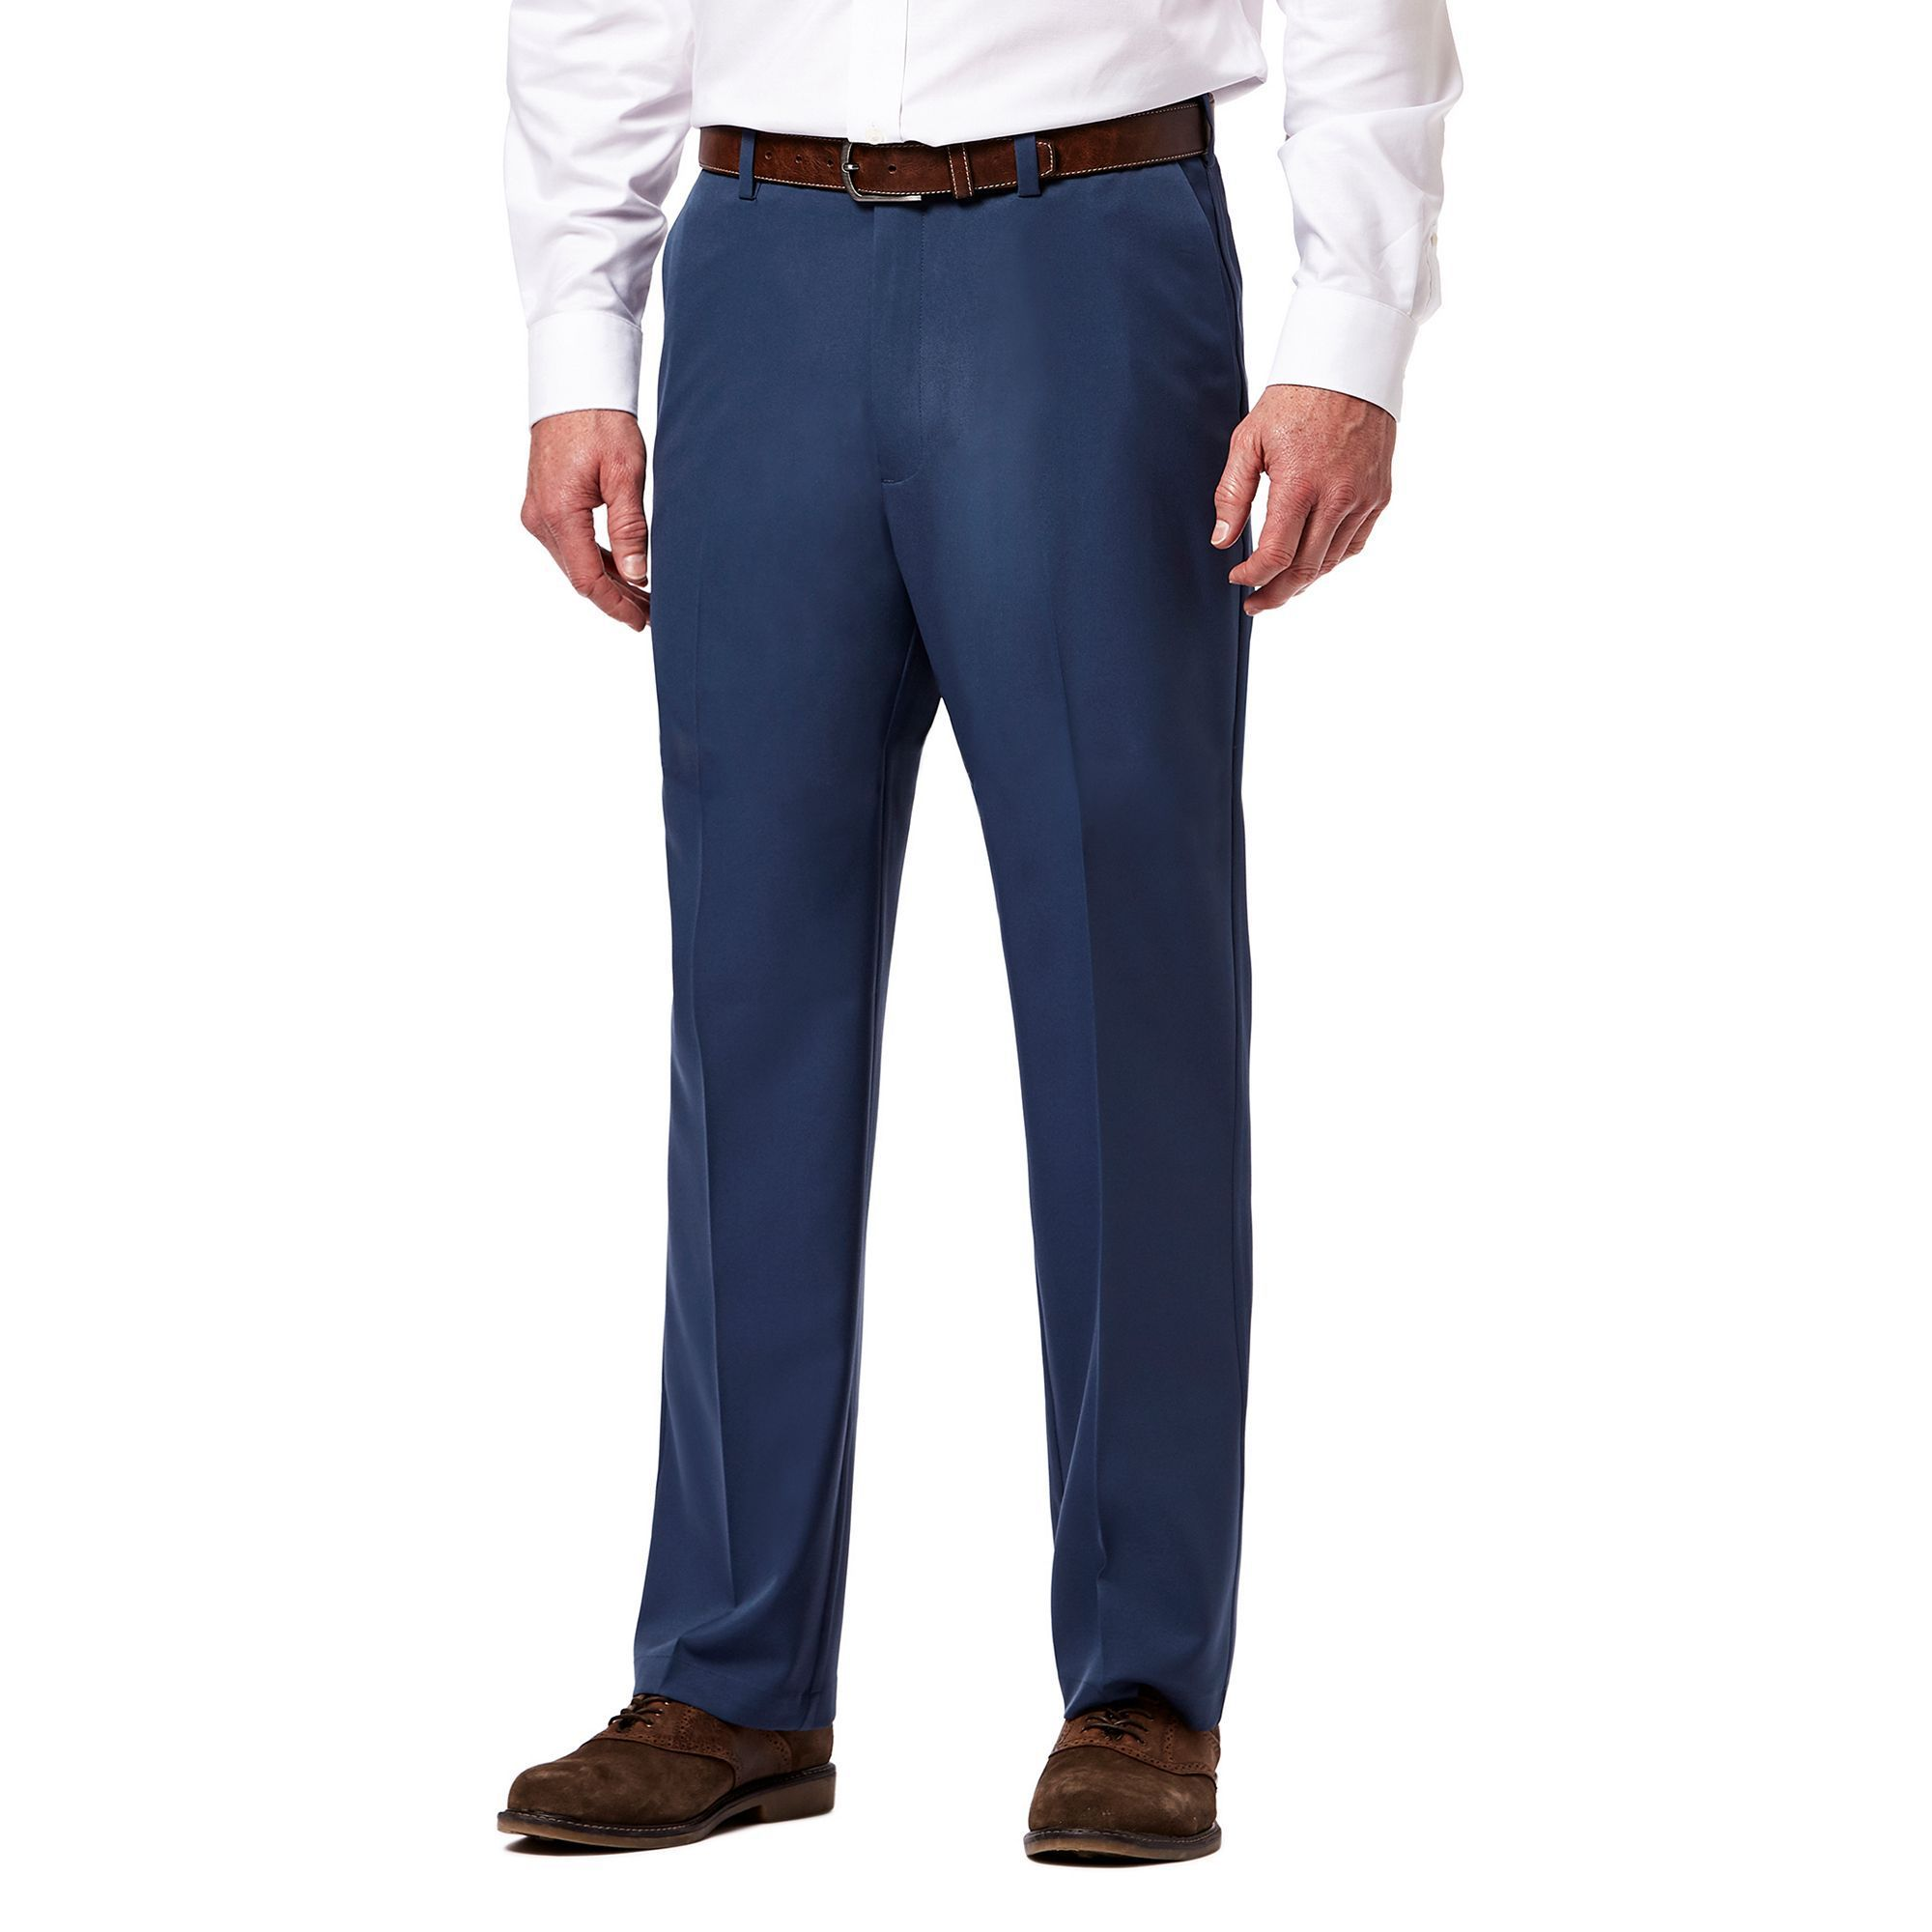 fit classic p flat comforter pro comfort mens navy men haggar s front waist of expandable picture cool pant jeans